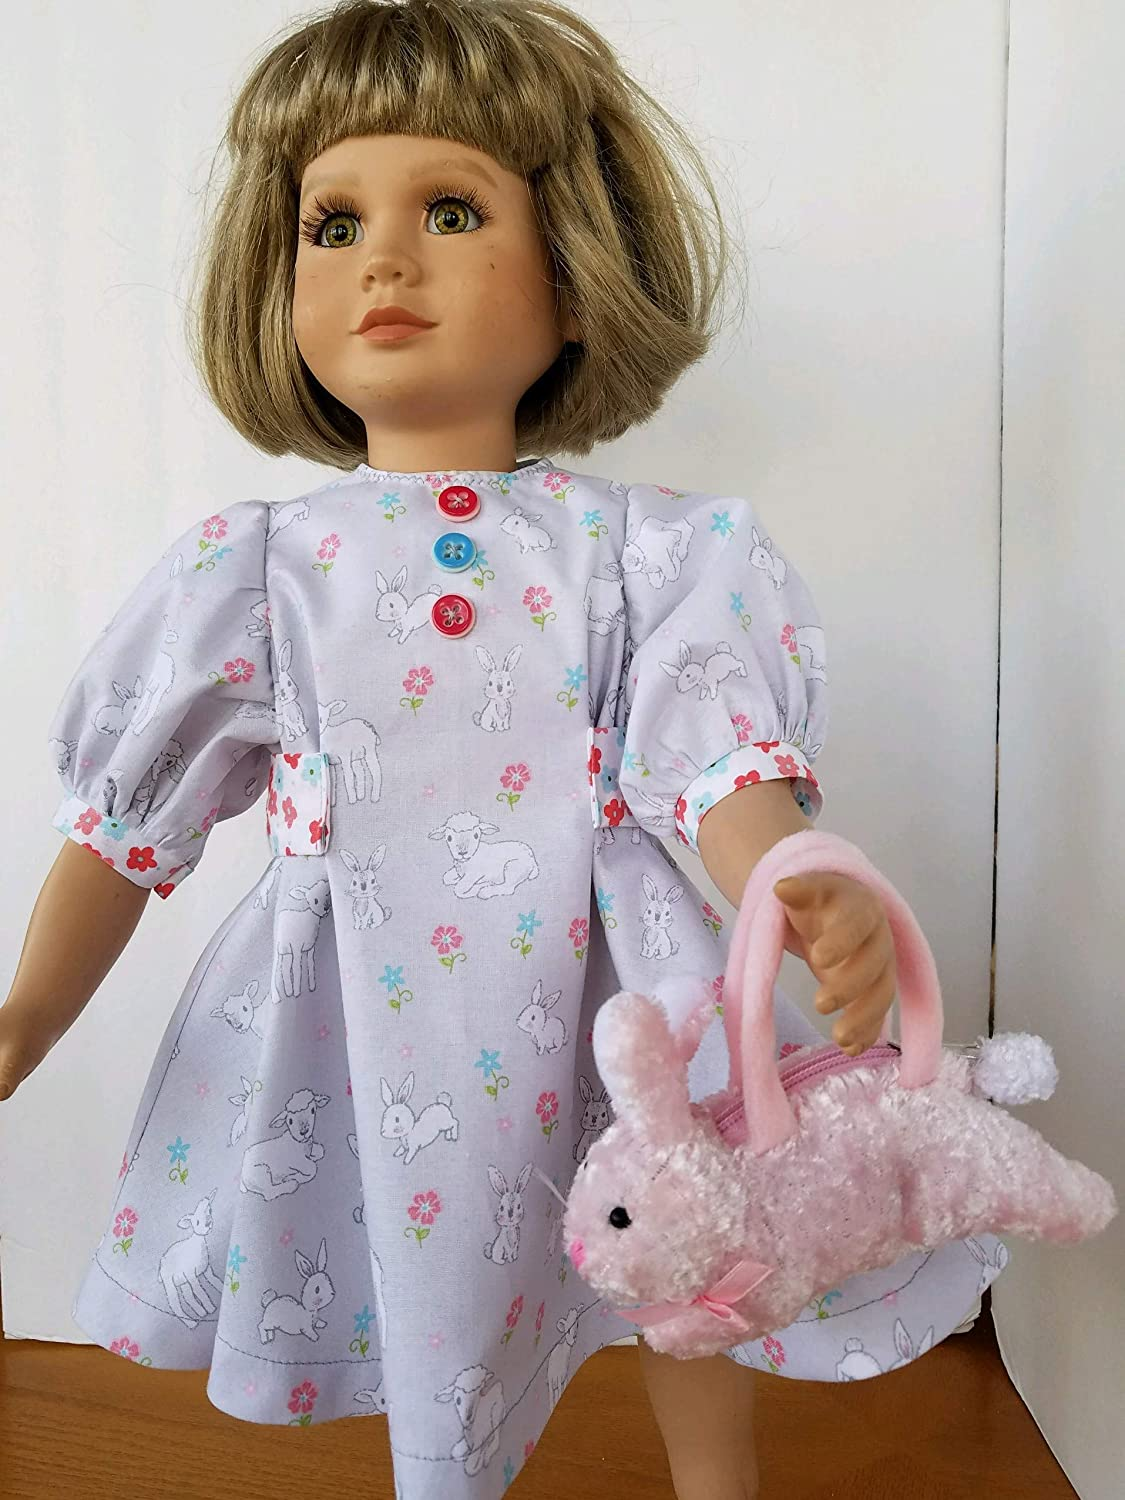 23 My Twinn Easter Spring Dress features Lambs /& Bunnies Bunny Purse